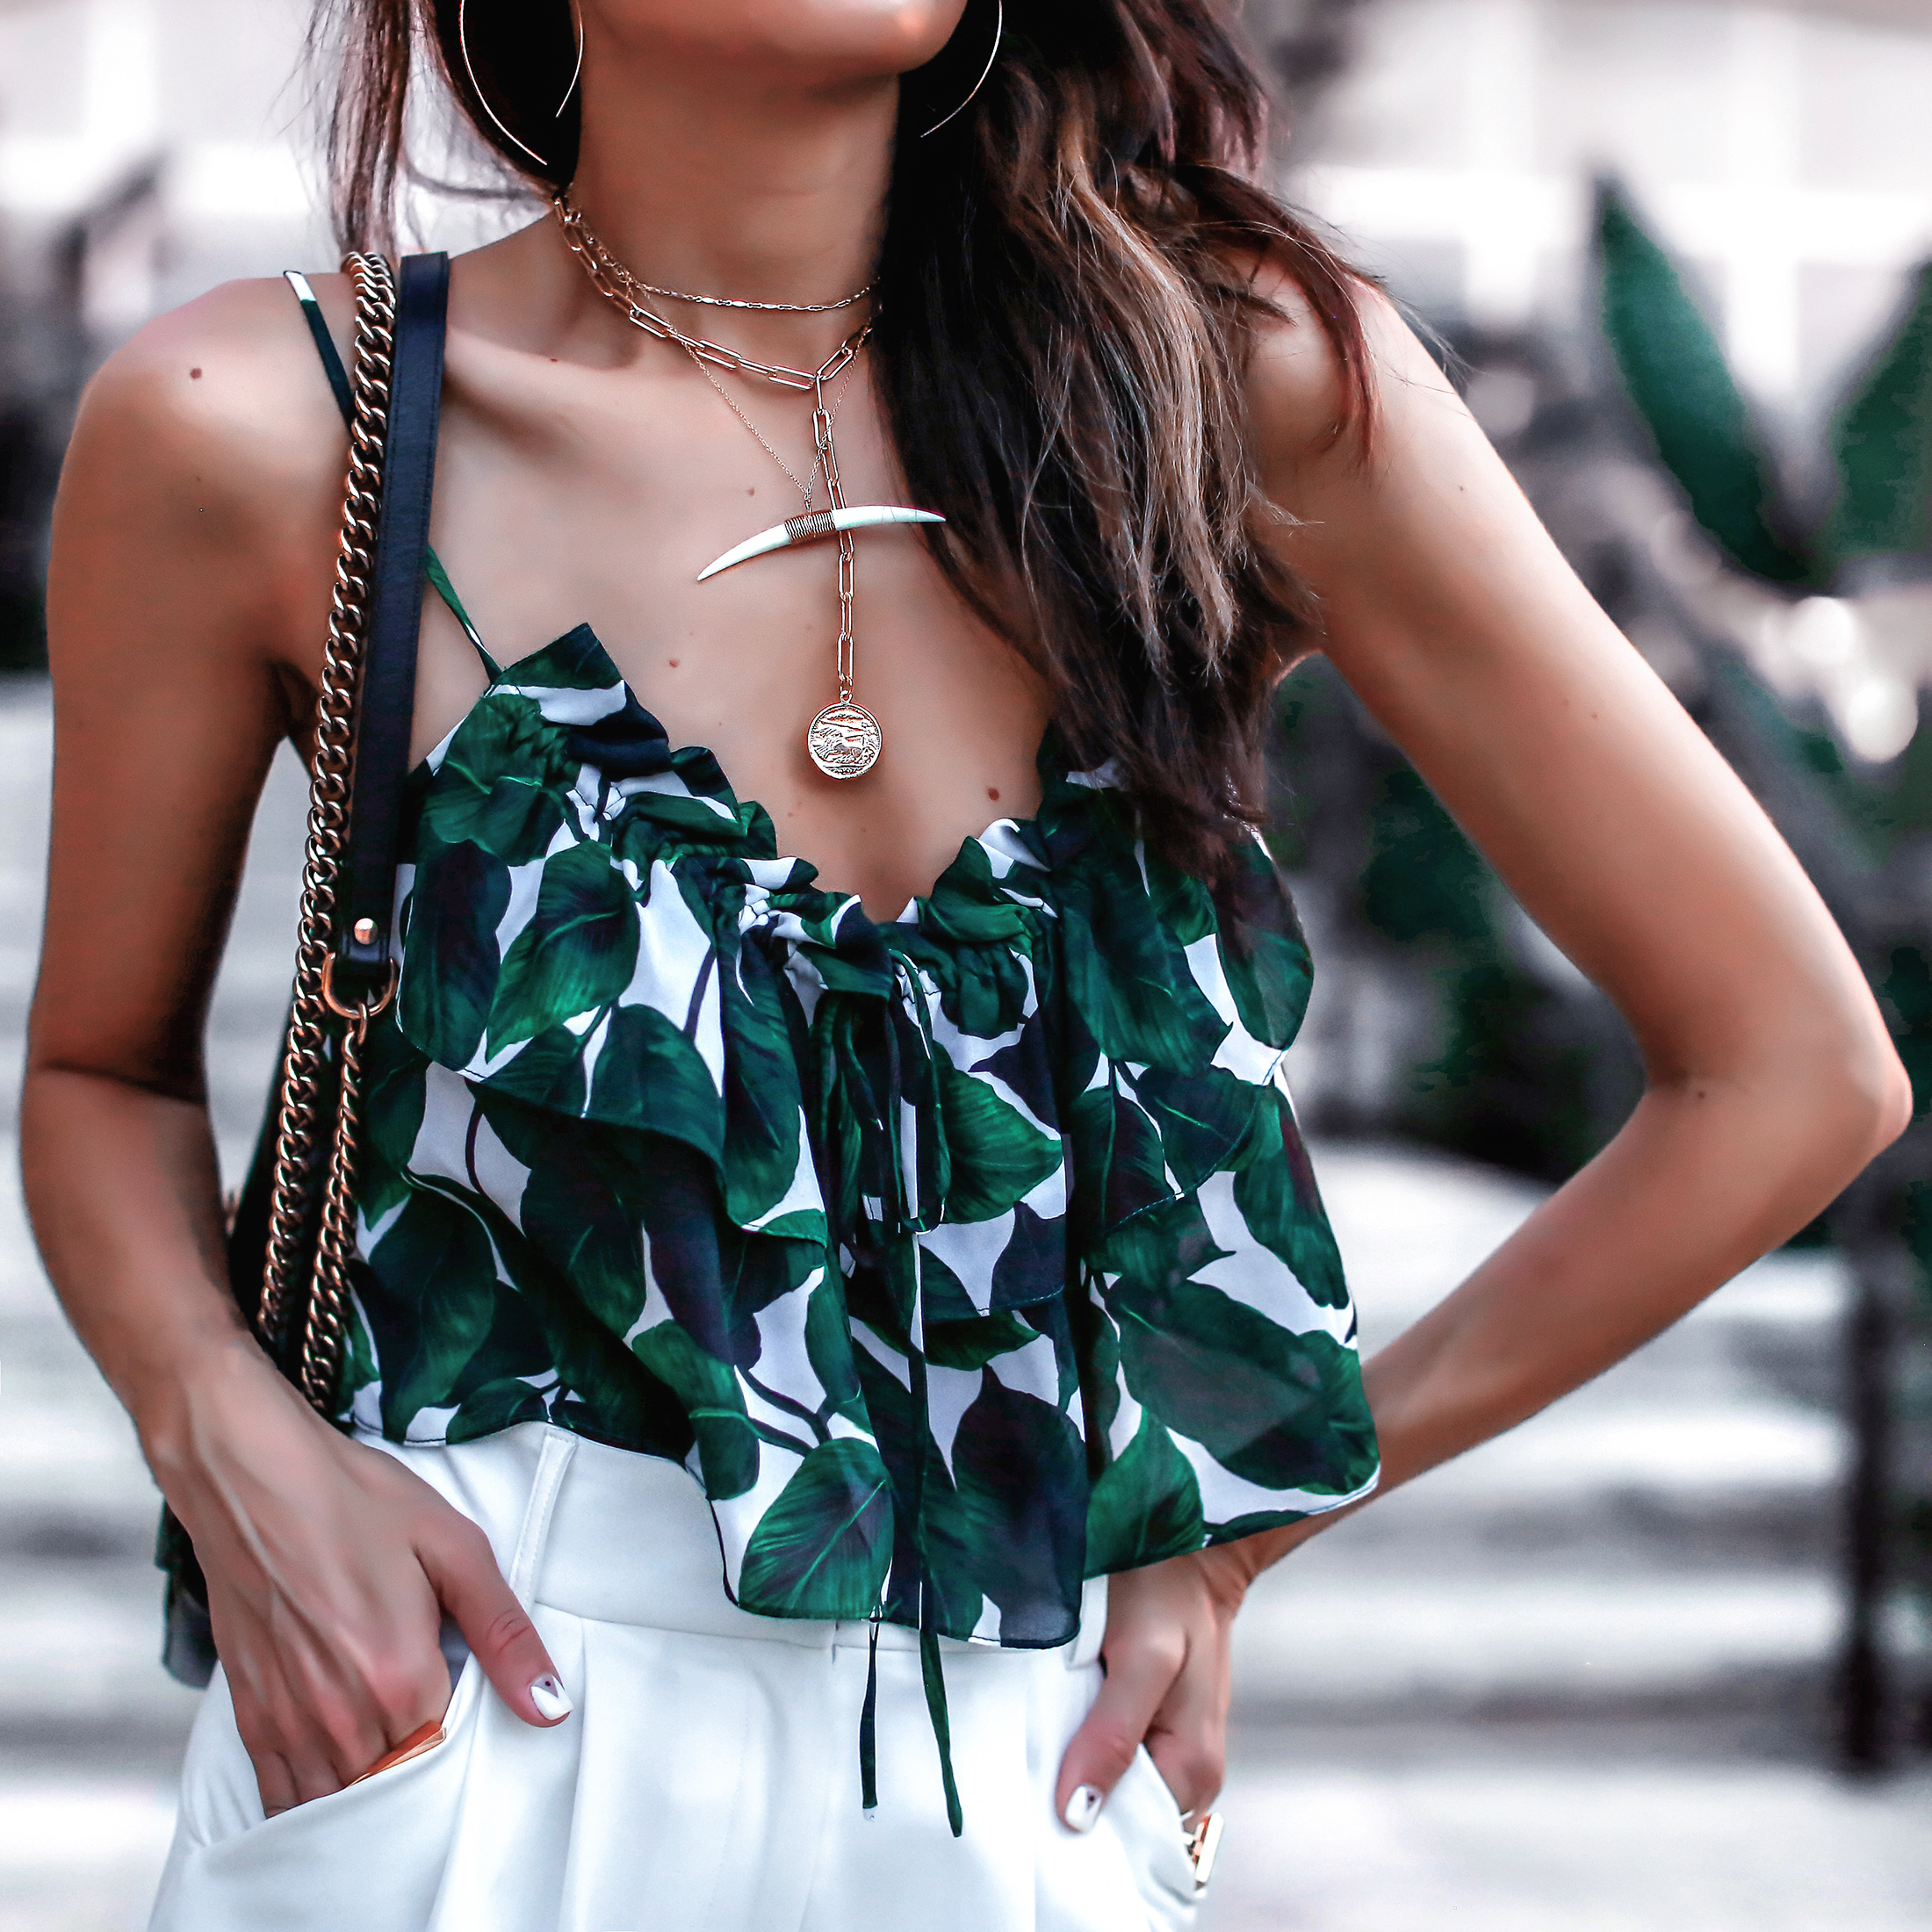 MILLY Bahamas Palm Print Top Resort Style.jpg